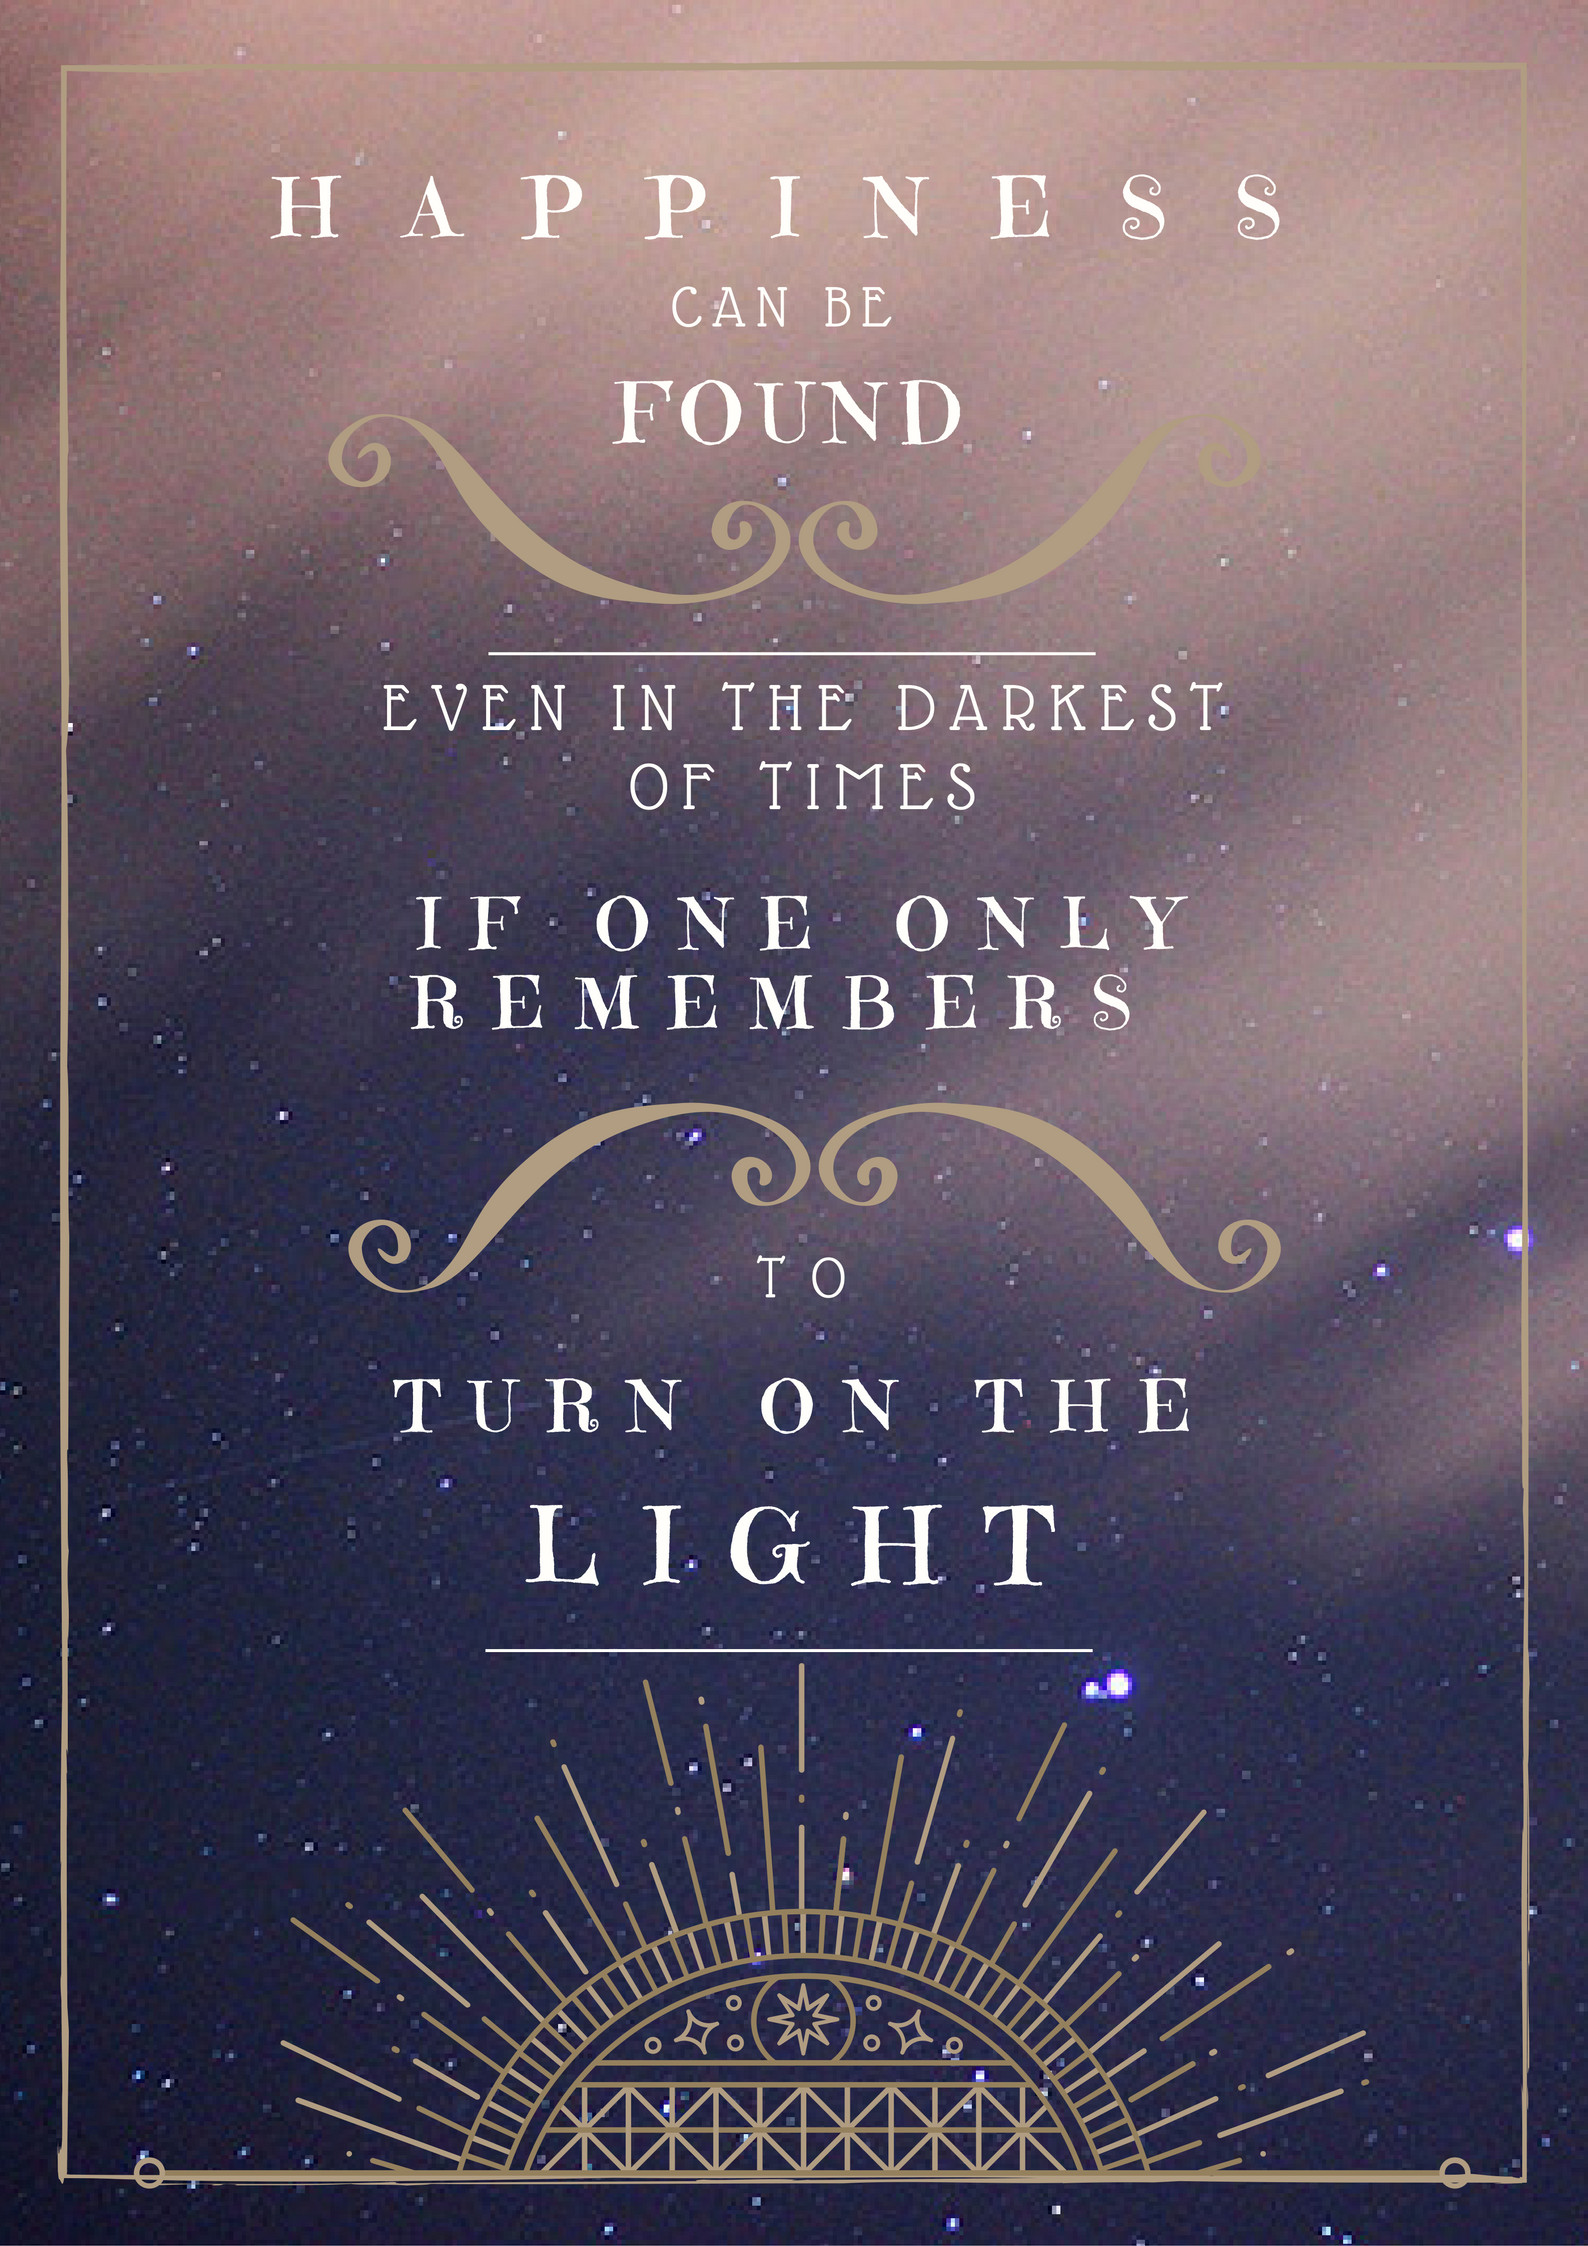 Happiness Can Be Found Even In The Darkest Of Times, - Harry Potter Iphone Background - HD Wallpaper